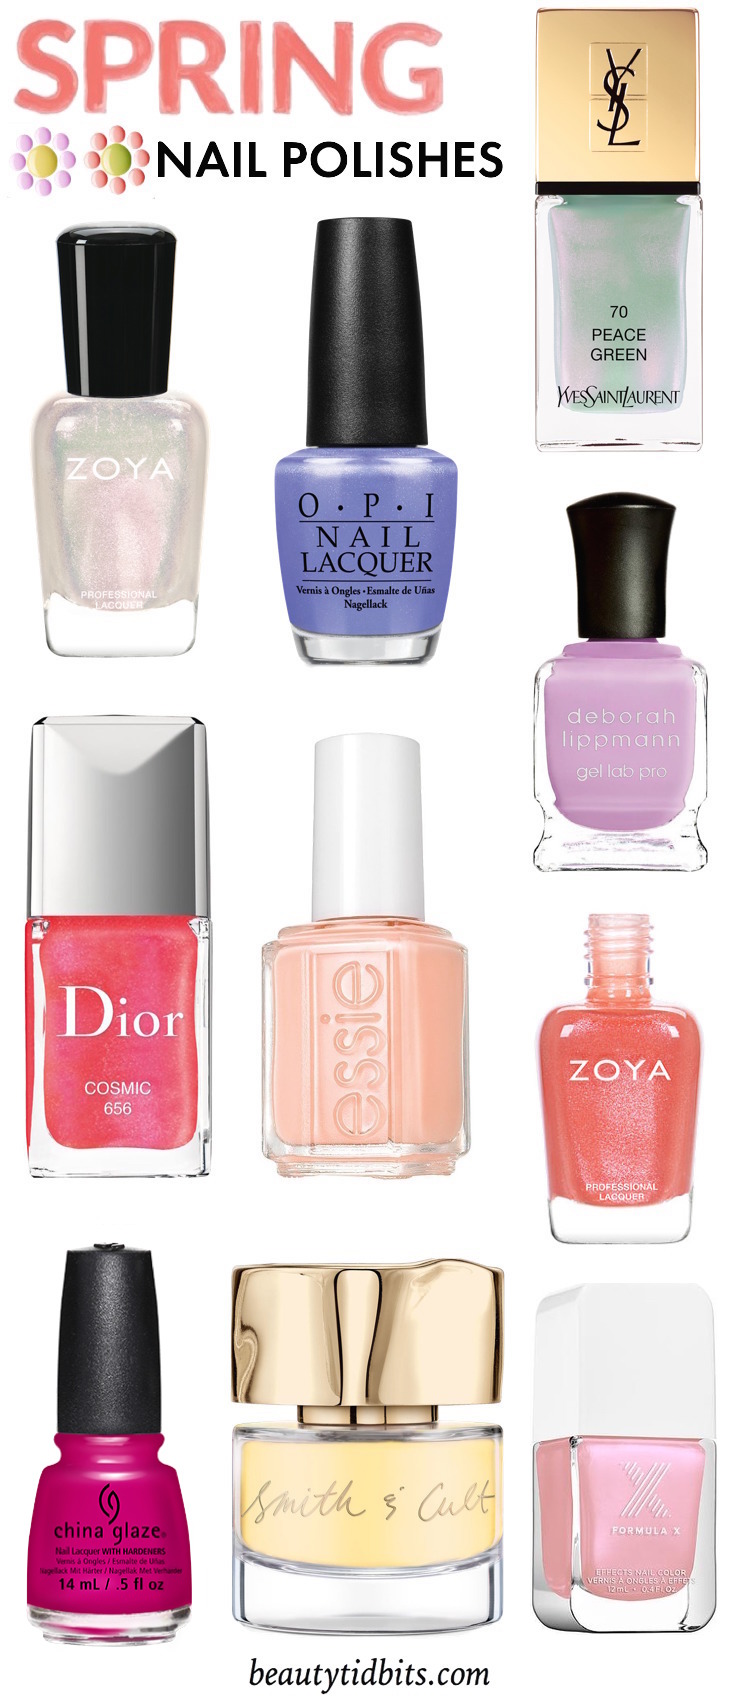 Bright manis are in bloom! Get on-trend for spring with these pretty polishes!